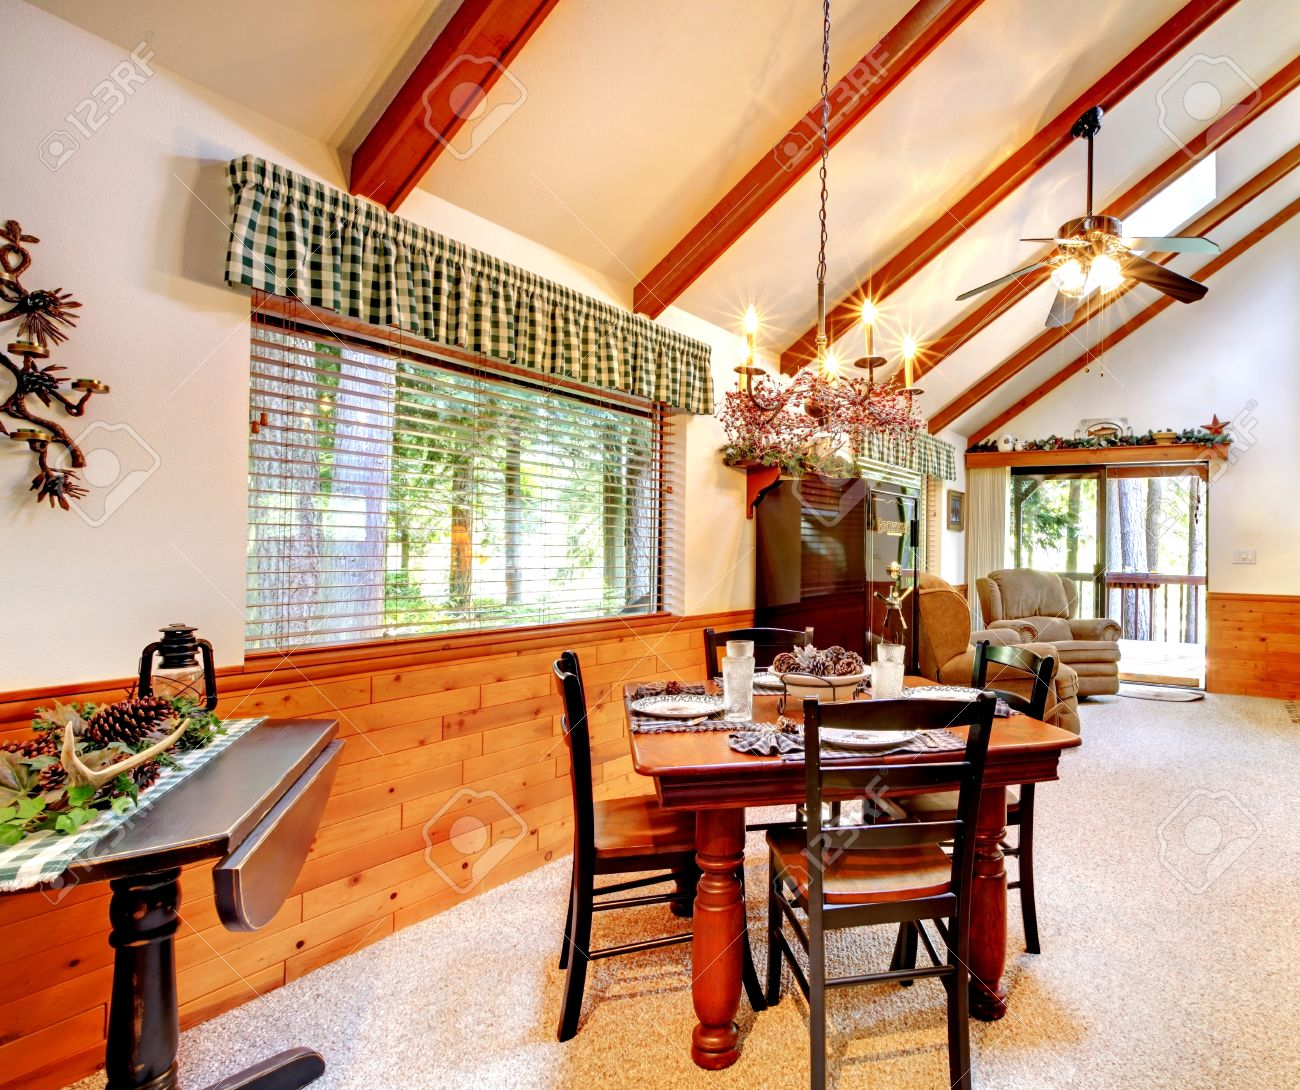 bright dining and living room in log cabin house high vaulted ceiling with beams and wooden